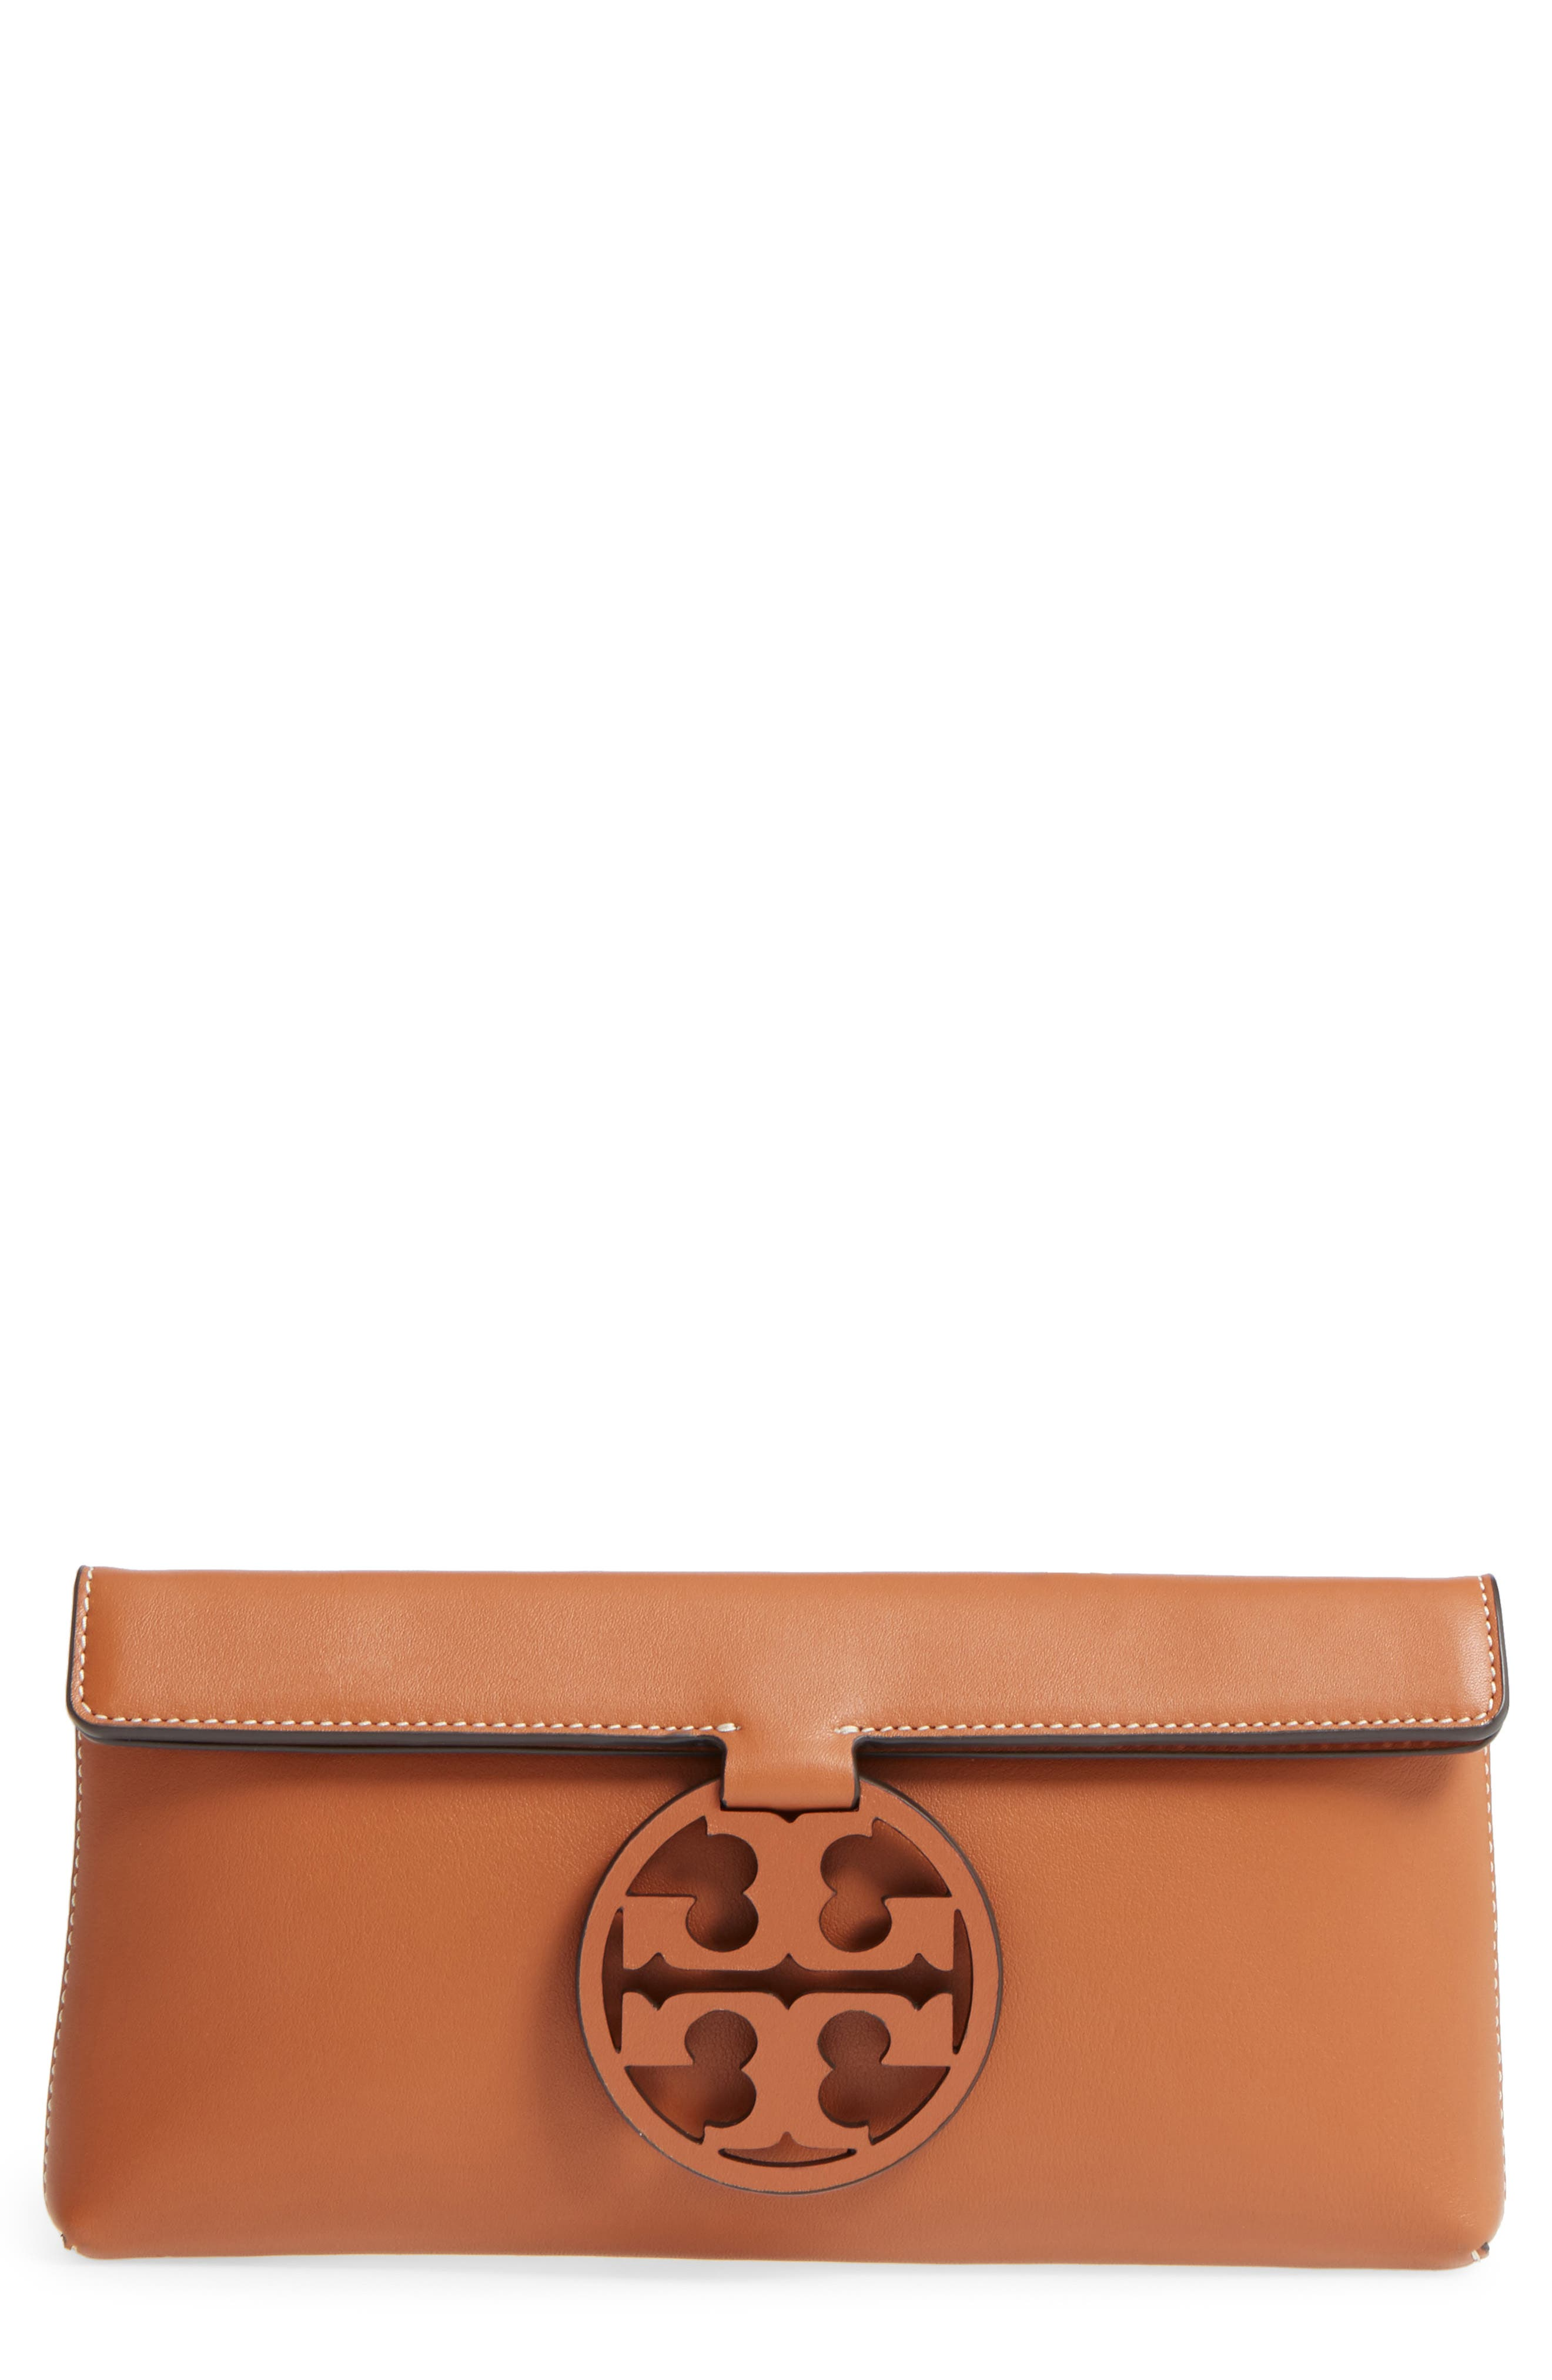 Miller Leather Clutch,                             Main thumbnail 1, color,                             New Cuoio